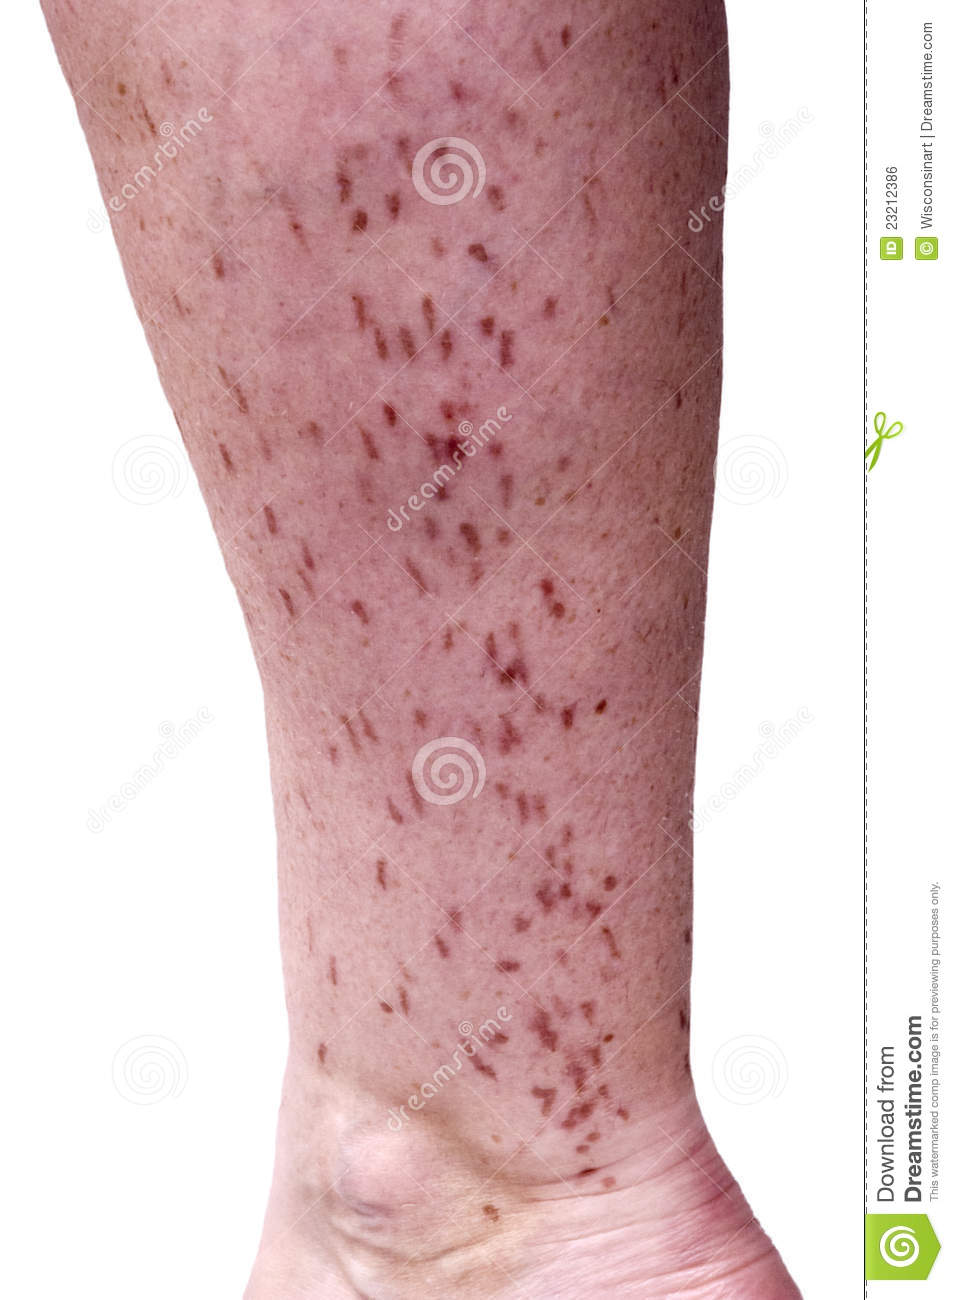 Laser Hair Removal Burn Skin Scarred Blister Stock Photo